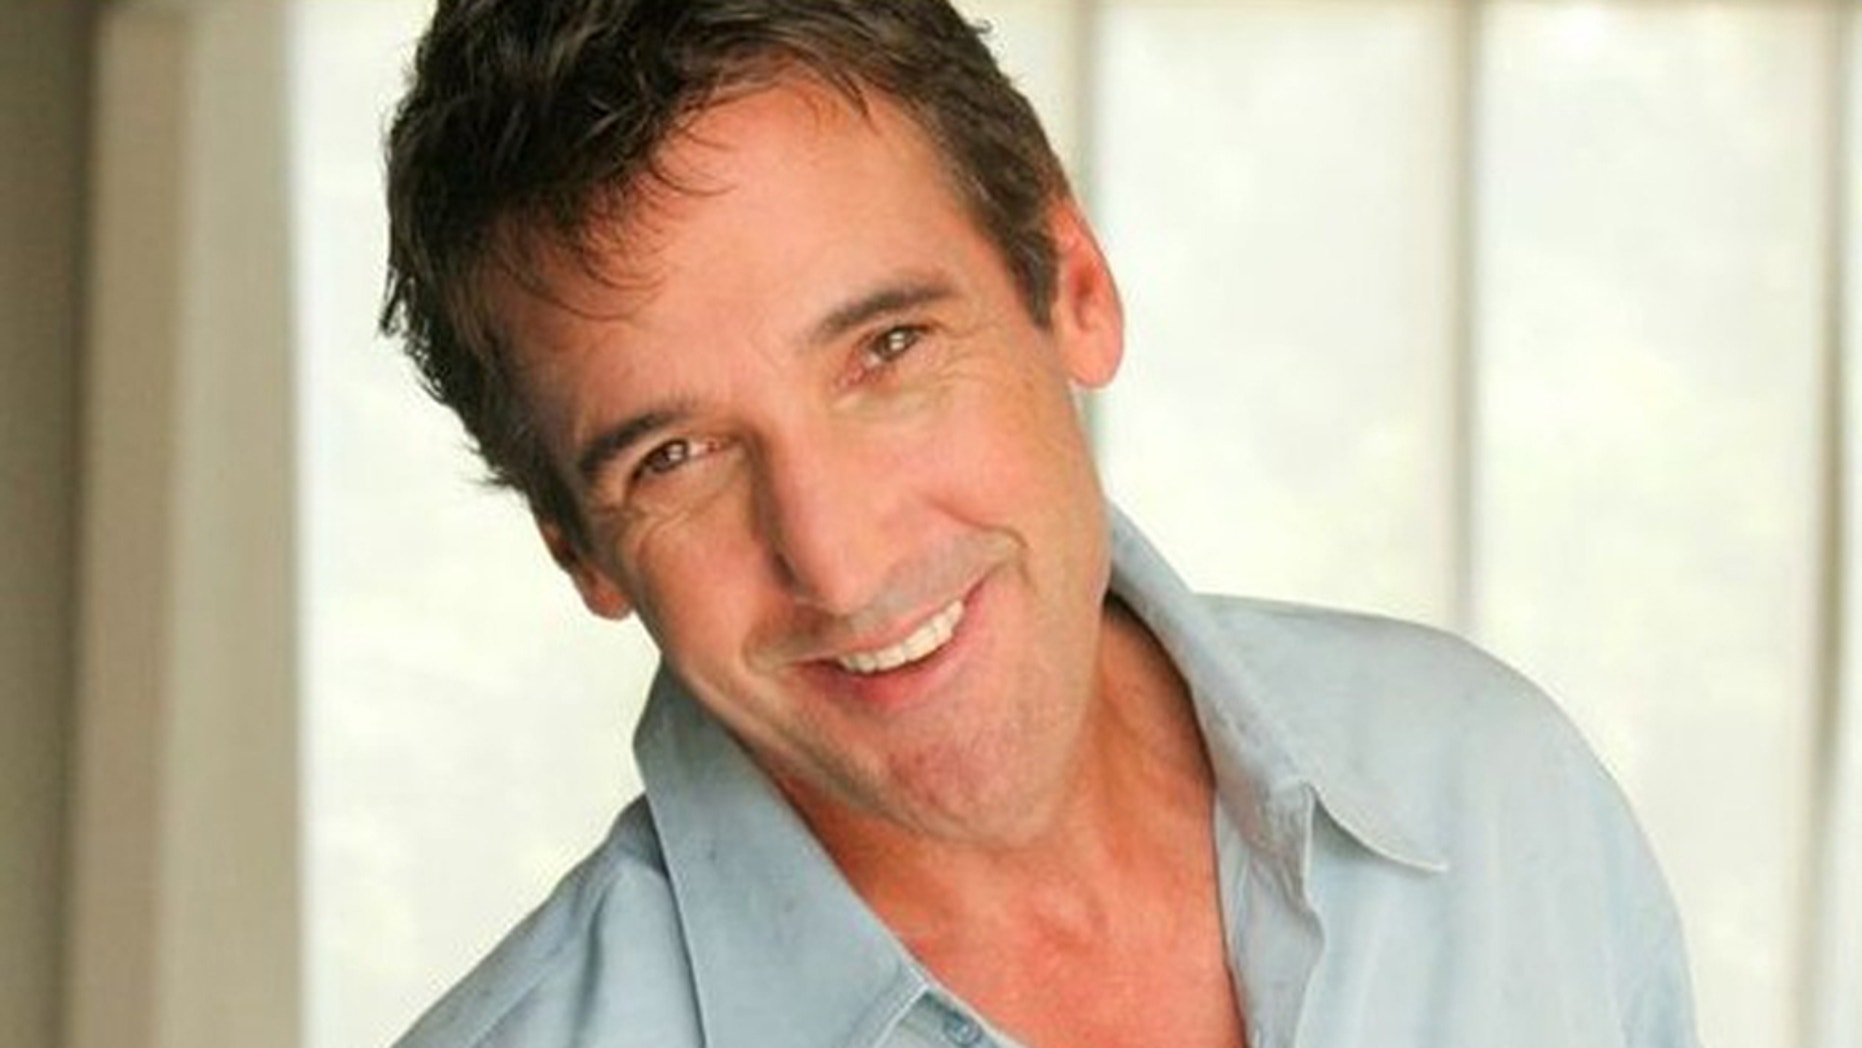 "This undated image provided by YEA Networks via Champion Management on Sunday, July 28, 2013, shows David ""Kidd"" Kraddick, a Texas-based radio and television personality. Kraddick, host of the ""Kidd Kraddick in the Morning"" show heard on dozens of U.S. radio stations, died Saturday July 27, 2013, at a charity golf event near New Orleans, a publicist said."